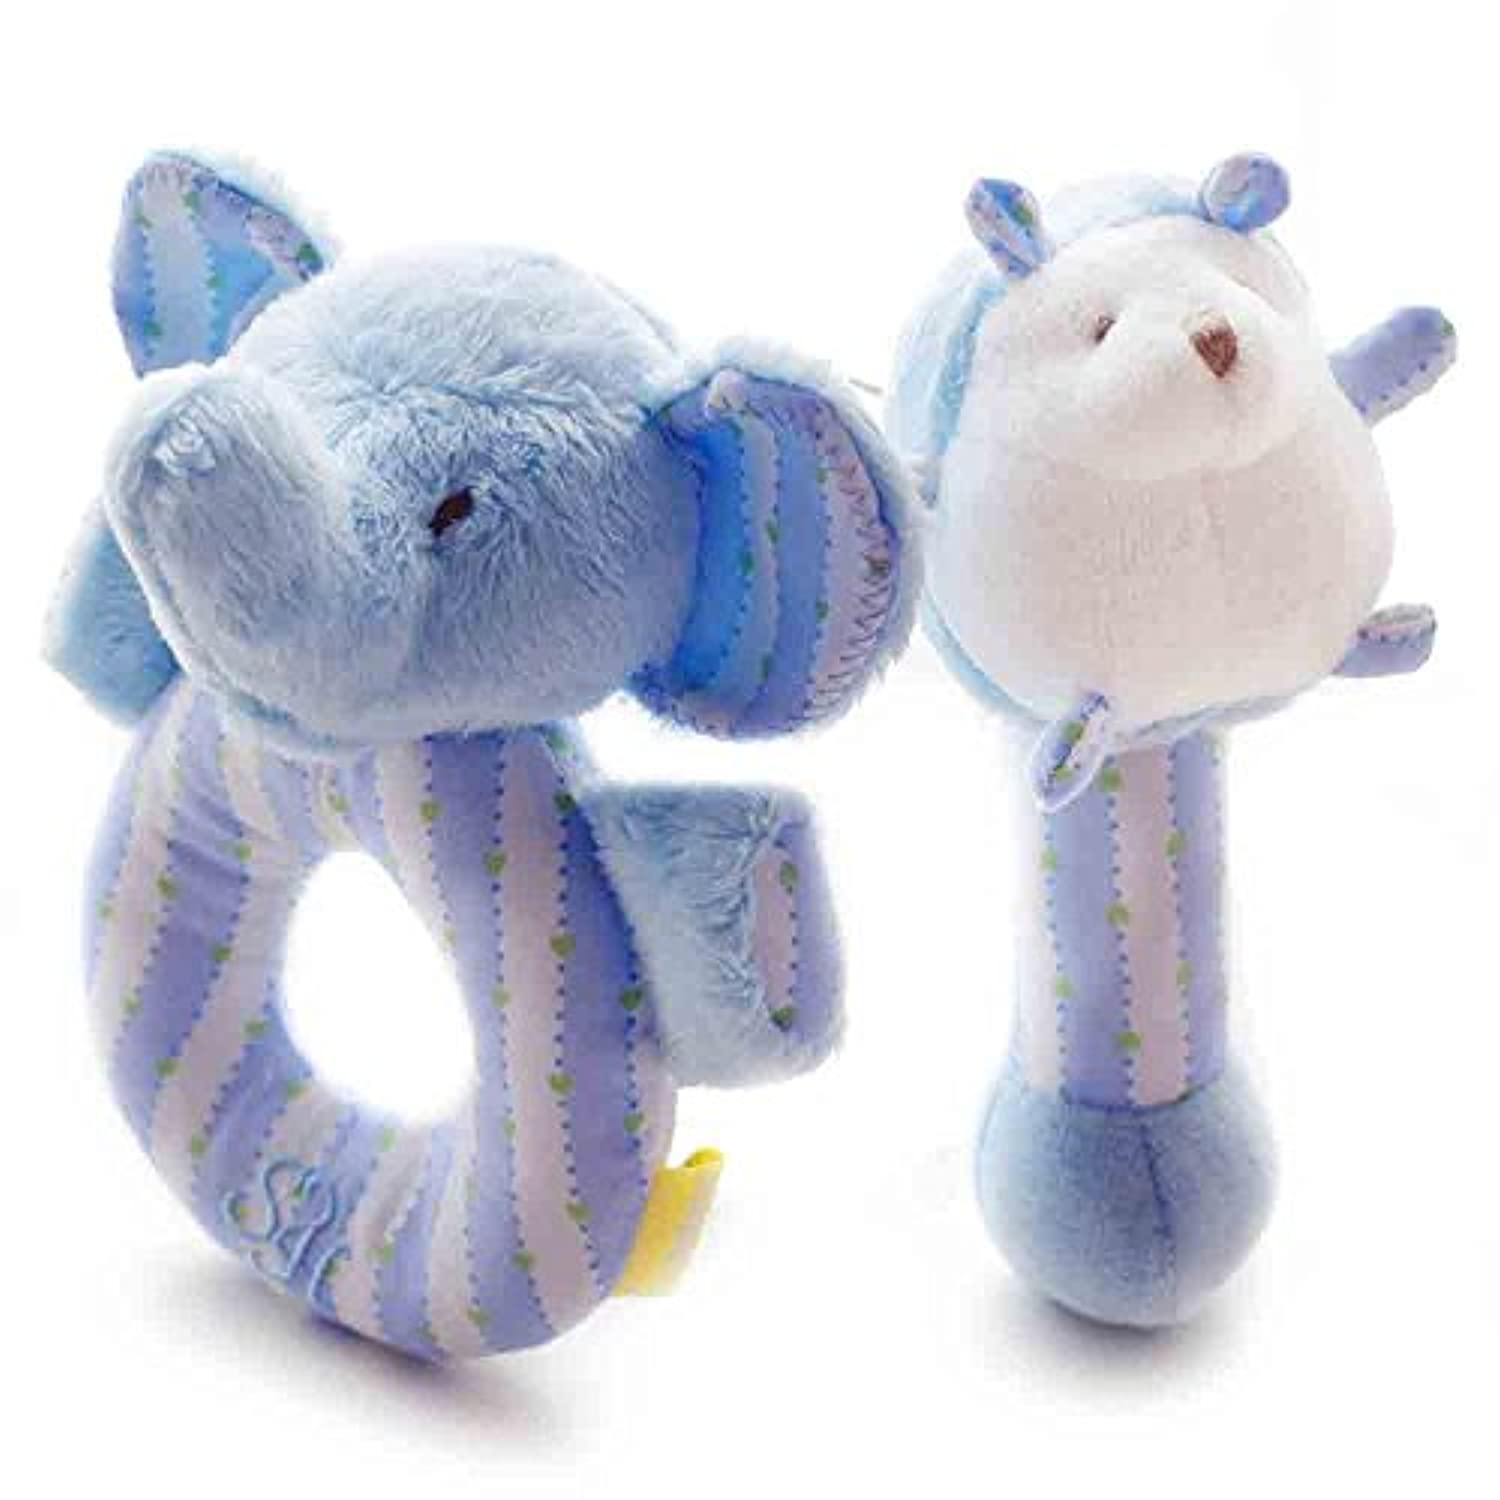 SHILOH Baby Plush Rattle 2 cont Elephant and Hedgehog Blue 4.8inX5.6in by Shiloh